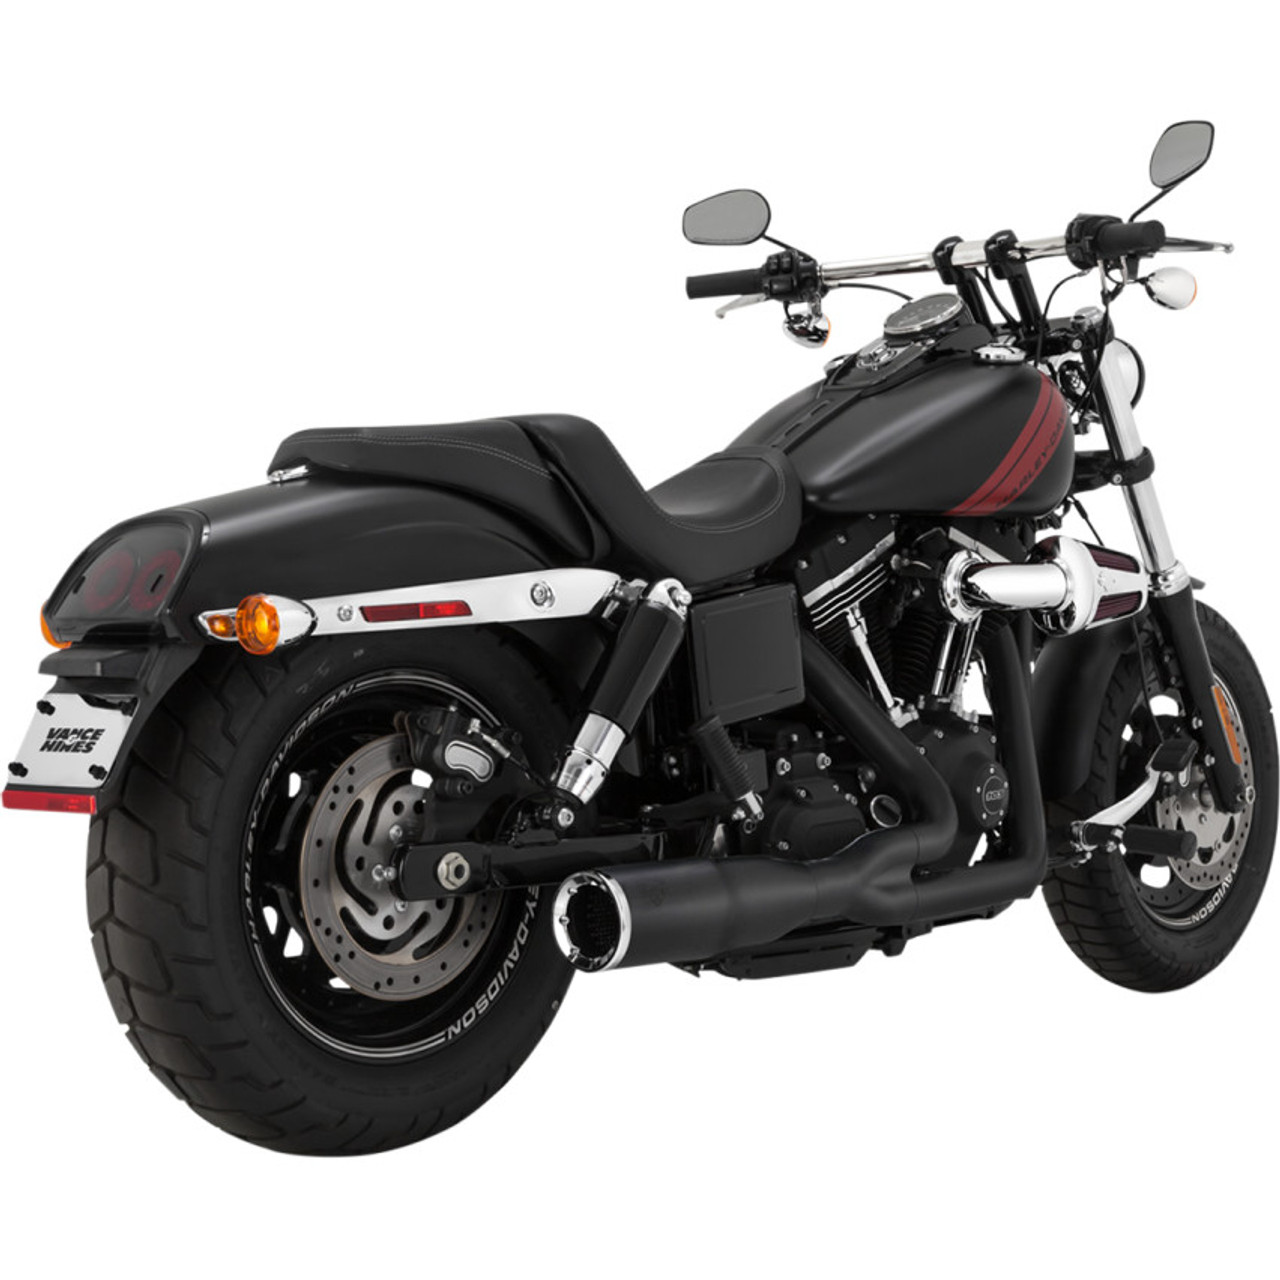 Vance Hines Hi Output 2 Into 1 Short Exhaust For 2006 2017 Harley Dyna Black Get Lowered Cycles